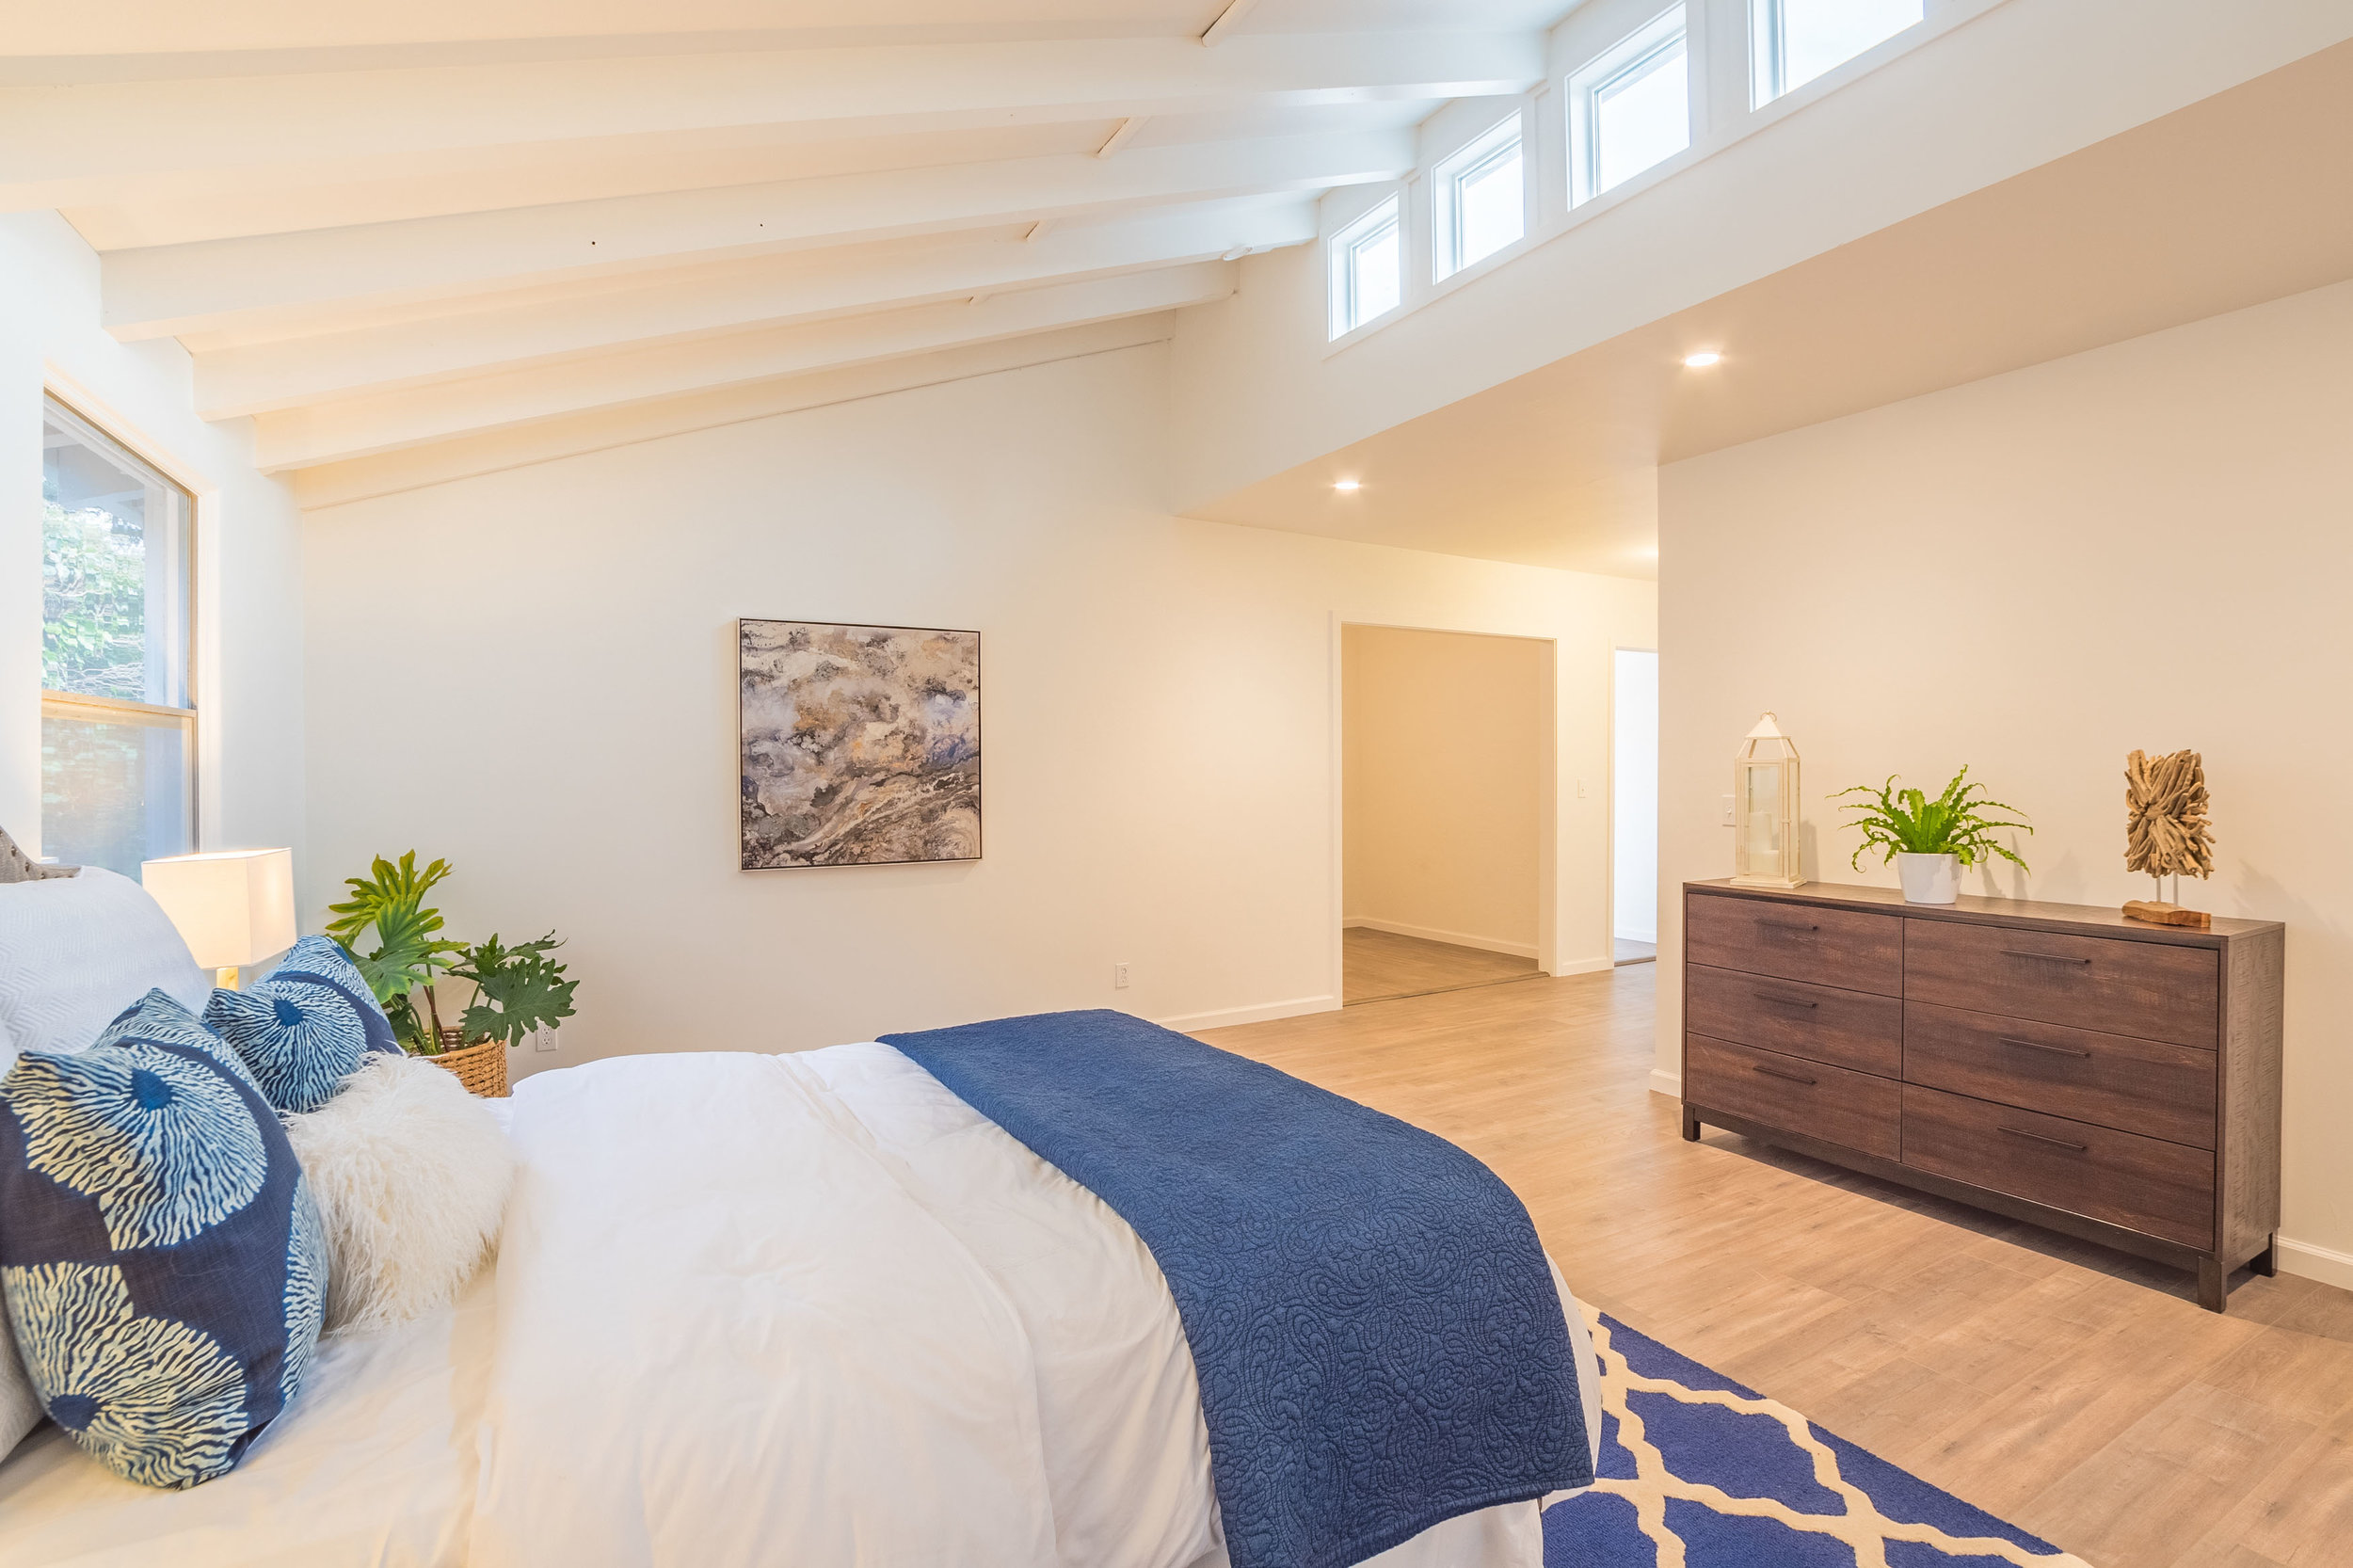 Vaulted Ceilings with Natural Light